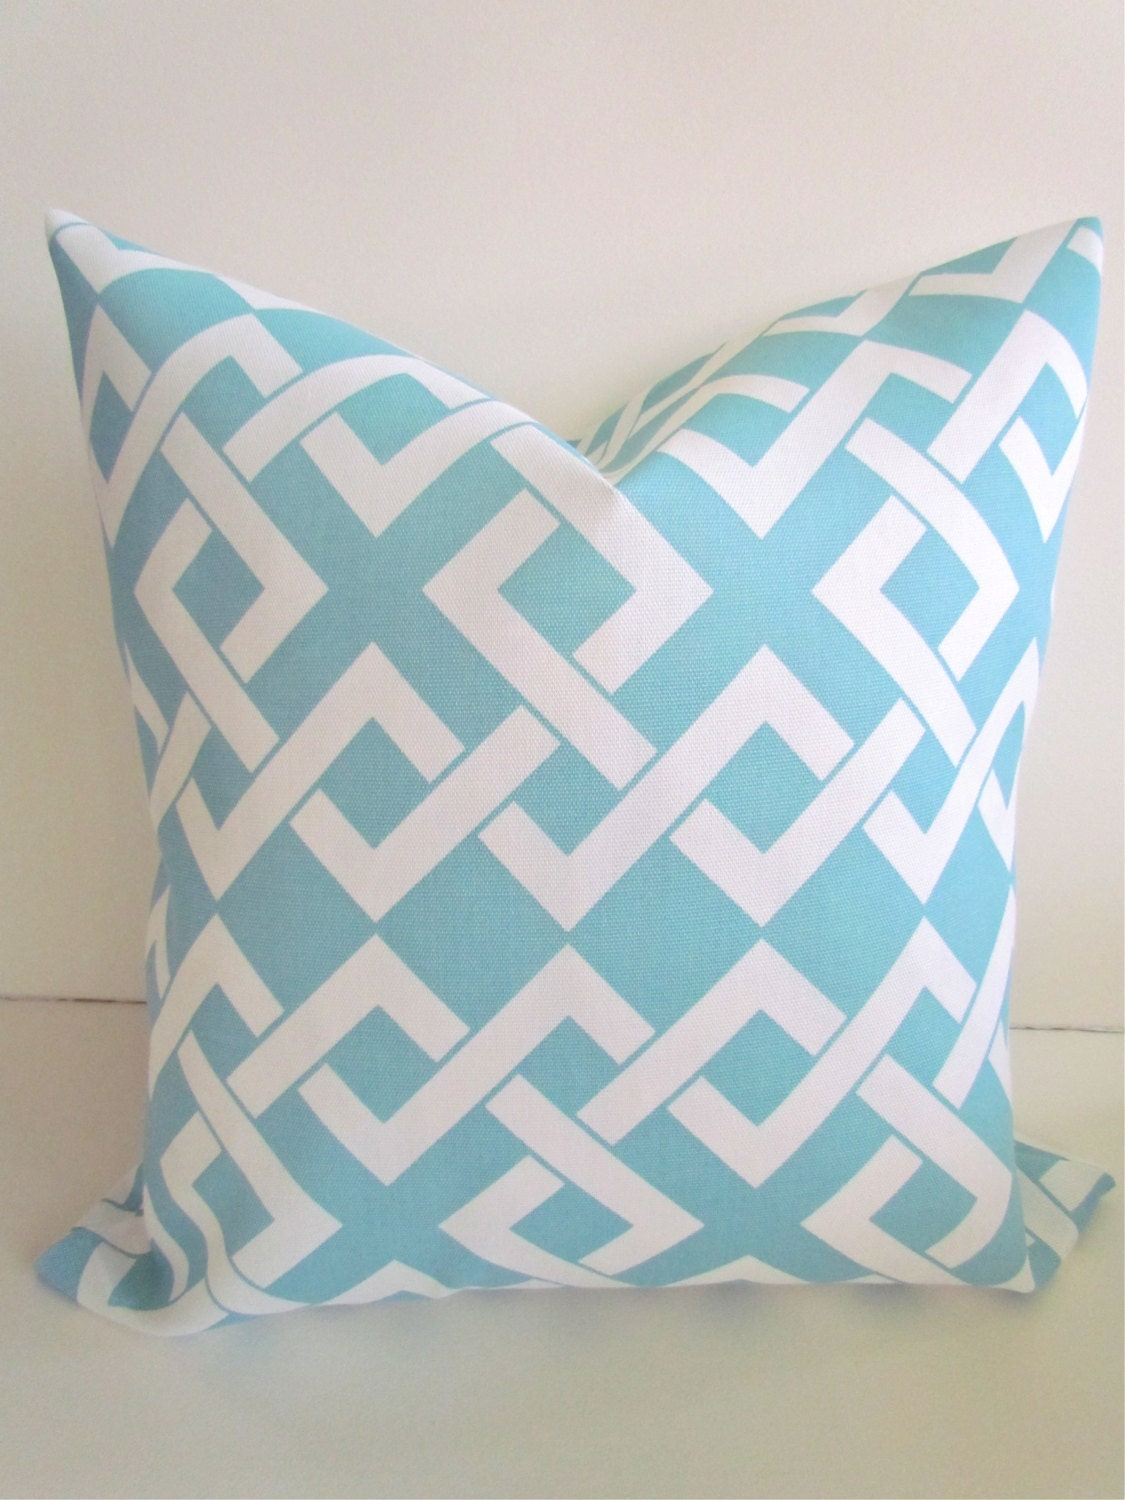 Pillow covers indoor outdoor 20 x 20 aqua blue decorative throw